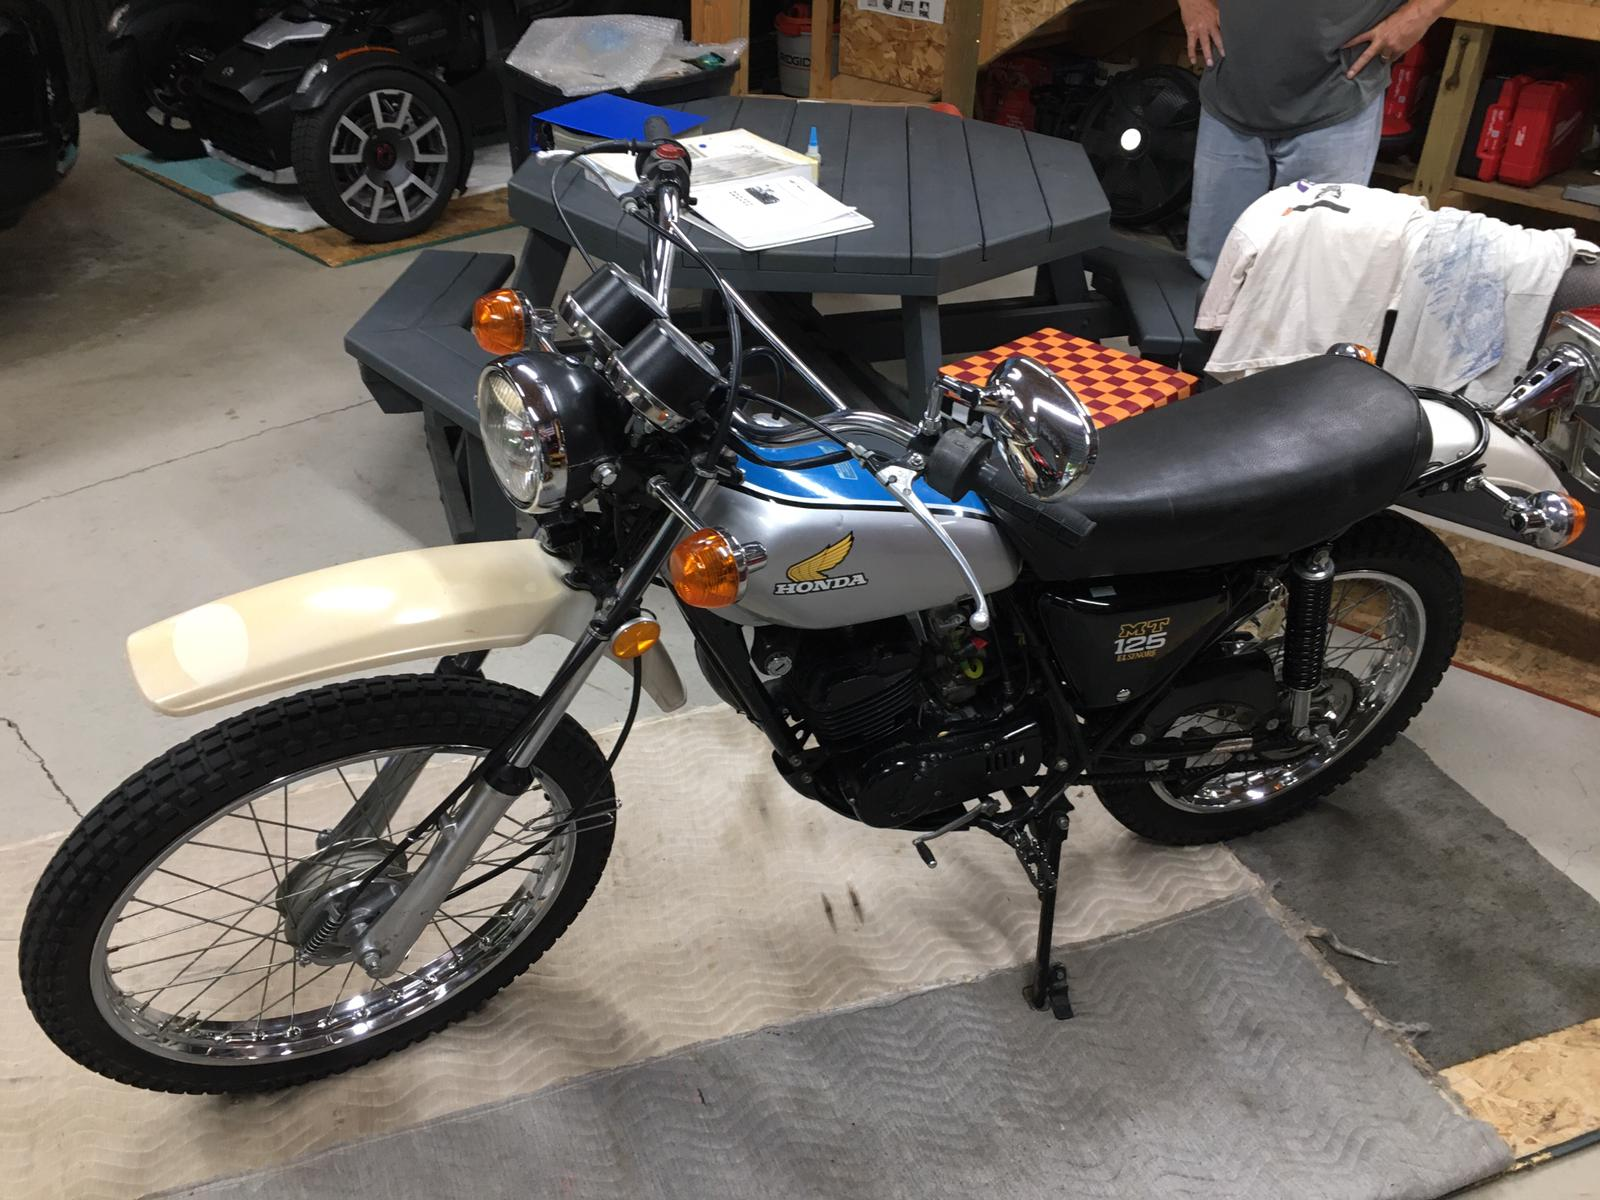 Original outstanding classic Motorcycle / Rare